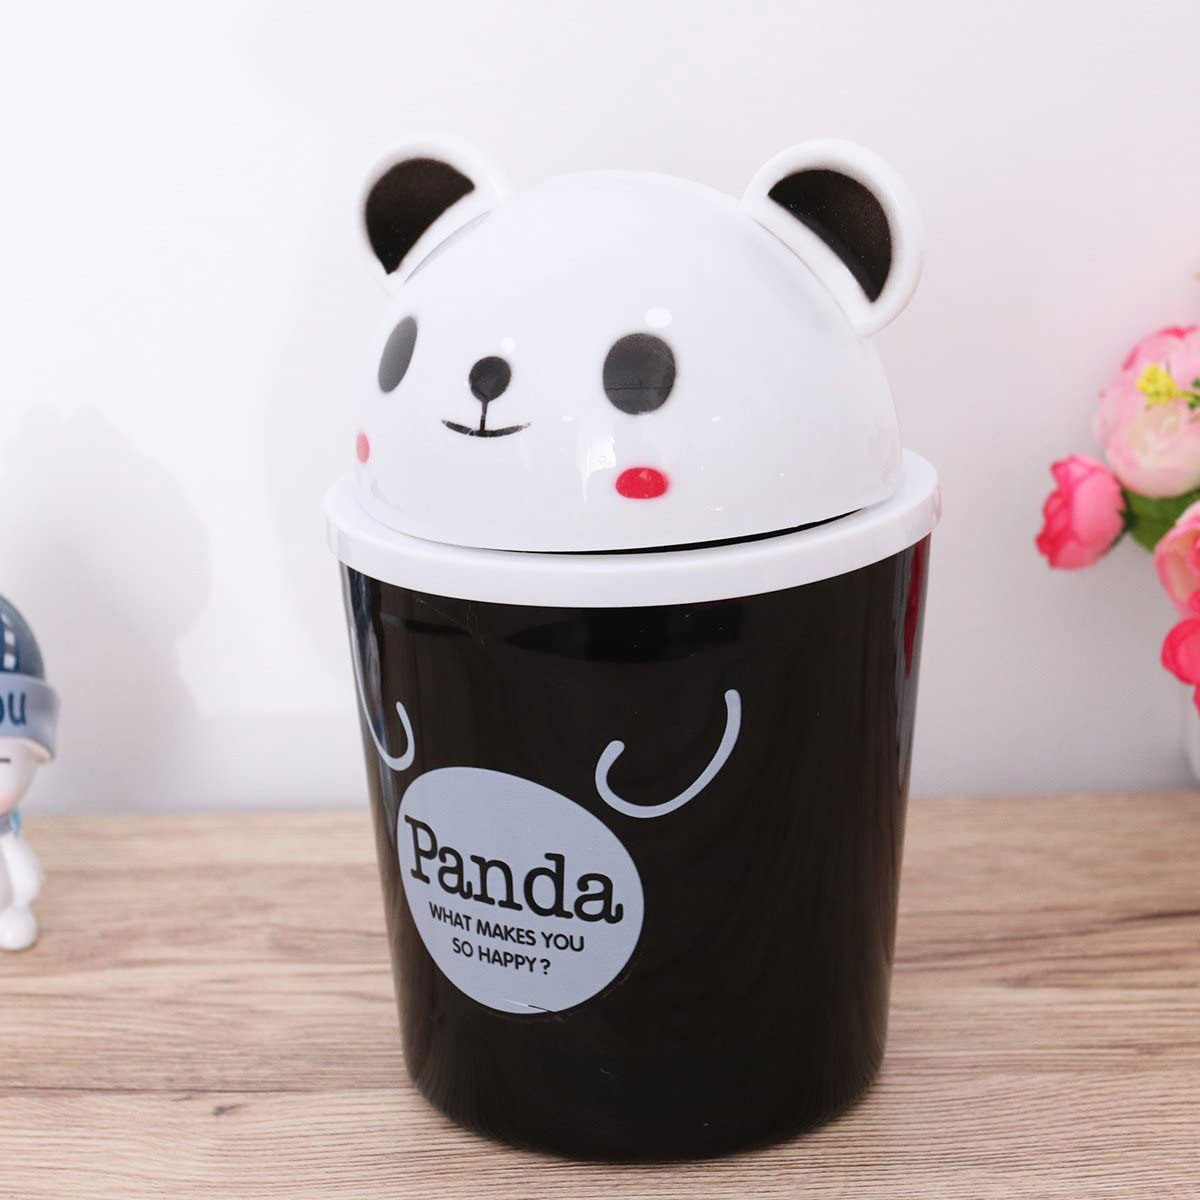 Panda shaped trash can